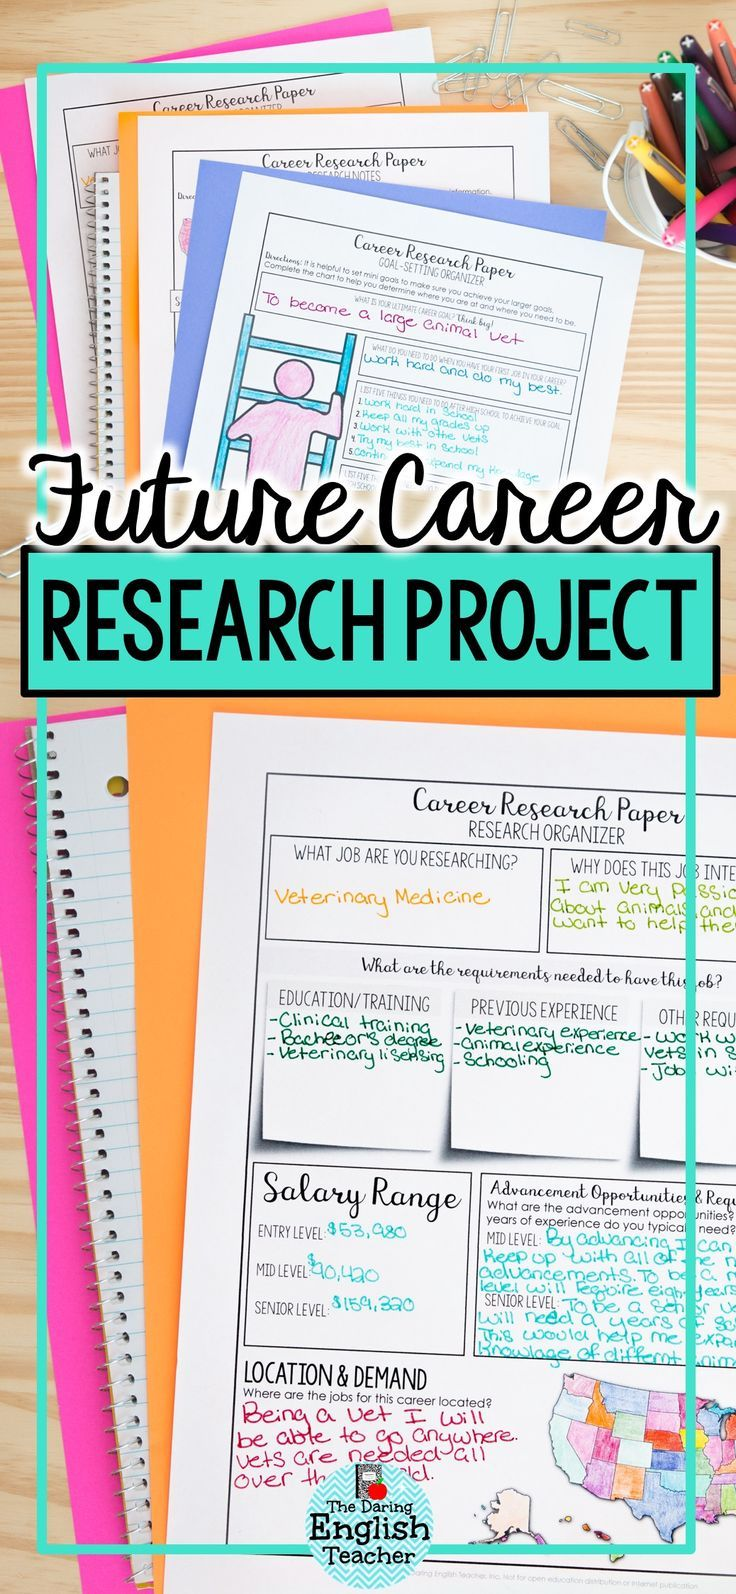 023 Research Paper Career Related Topics Singular Development Full